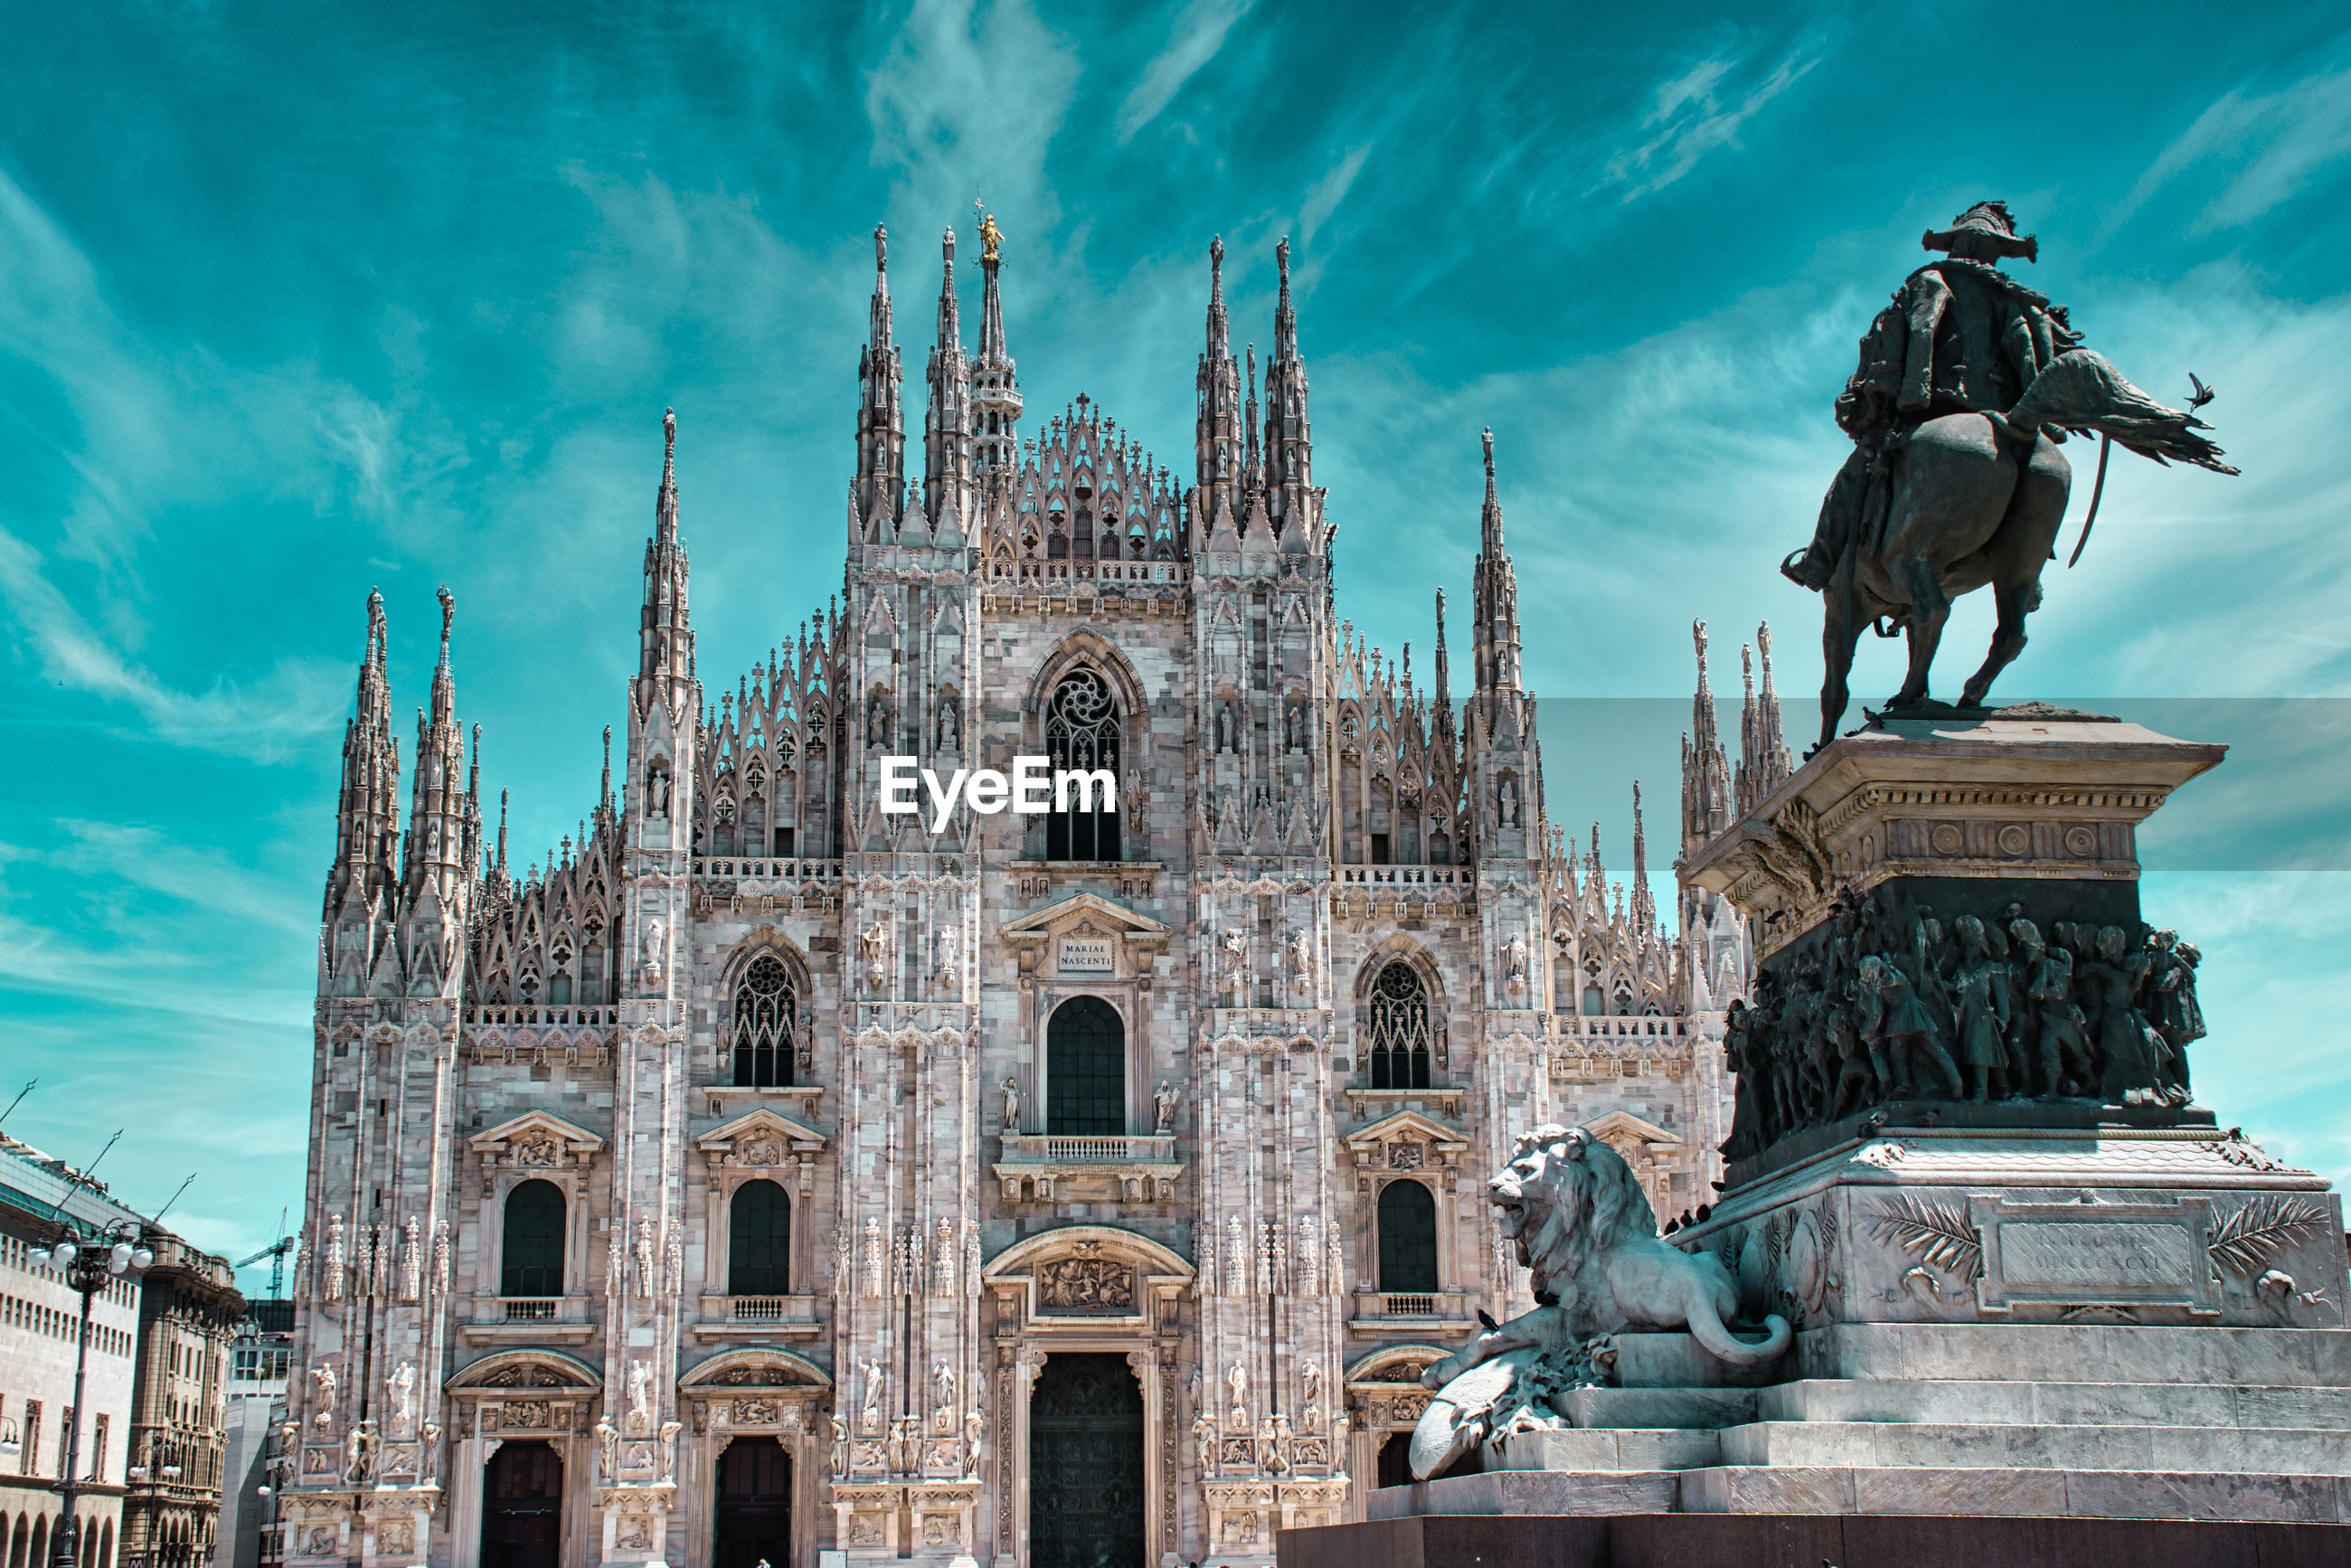 Duomo di milano, milan cathedral is the largest church in italy and the third largest in the world